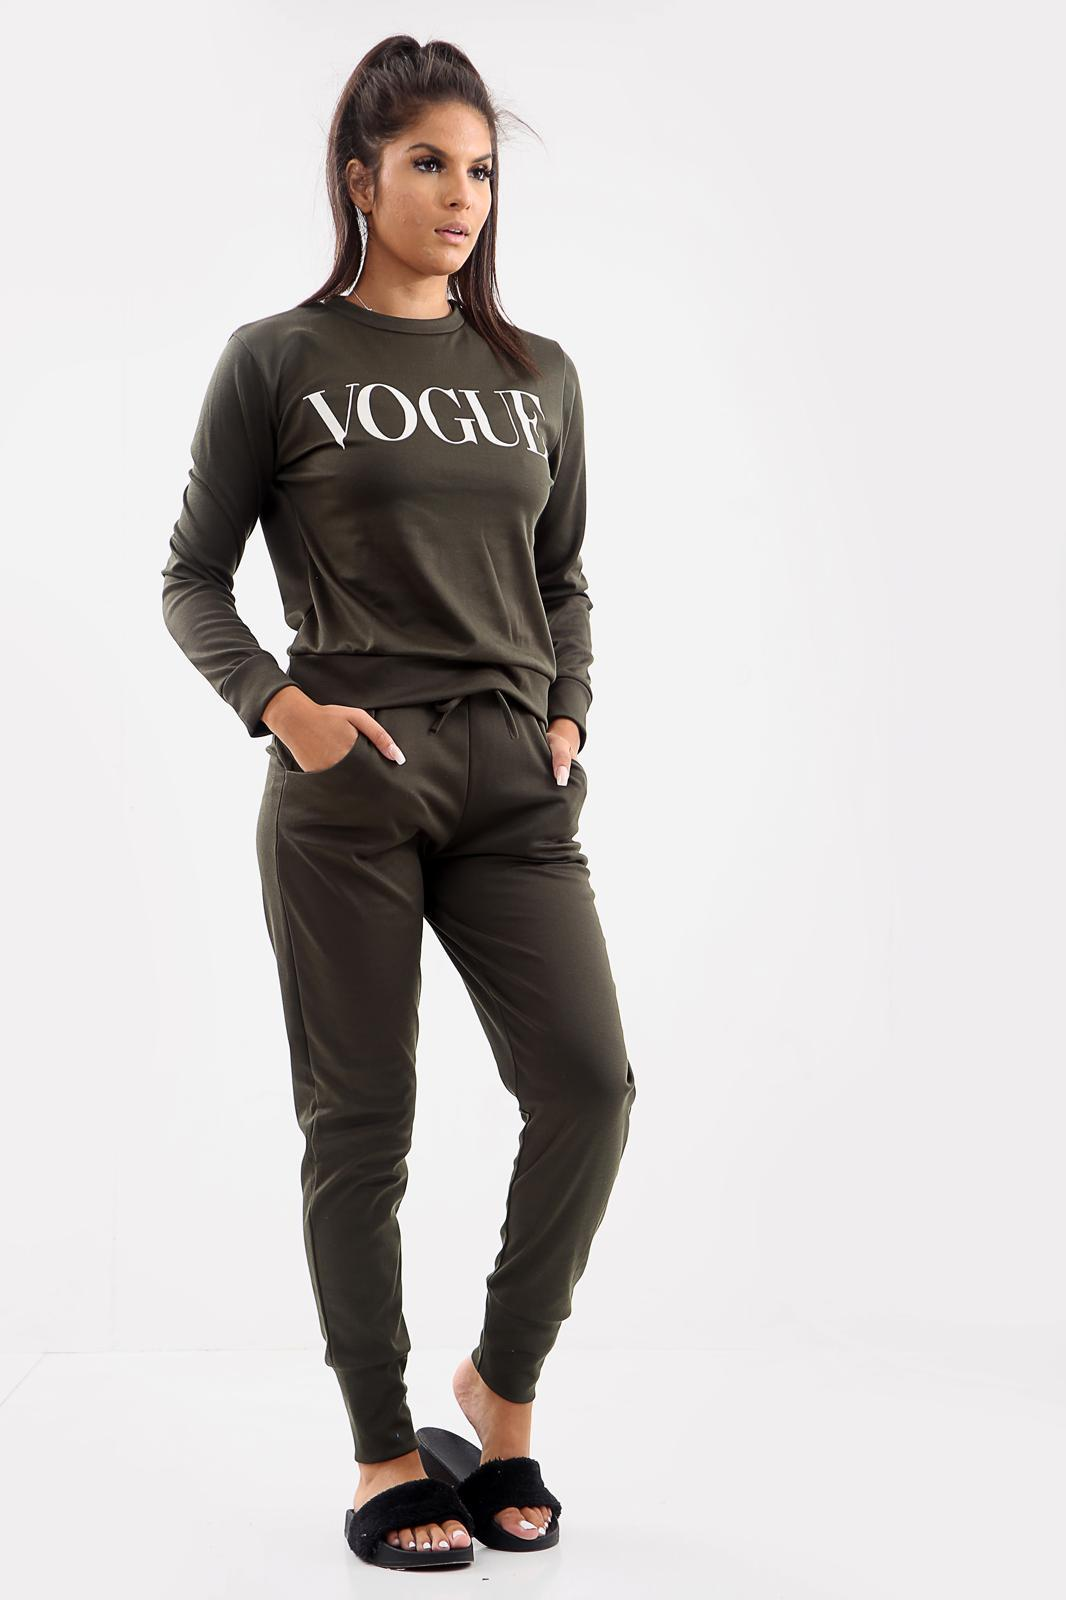 UK Women Vogue Print 2 Piece Co-Ord Lounge wear Tracksuit Ladies Long